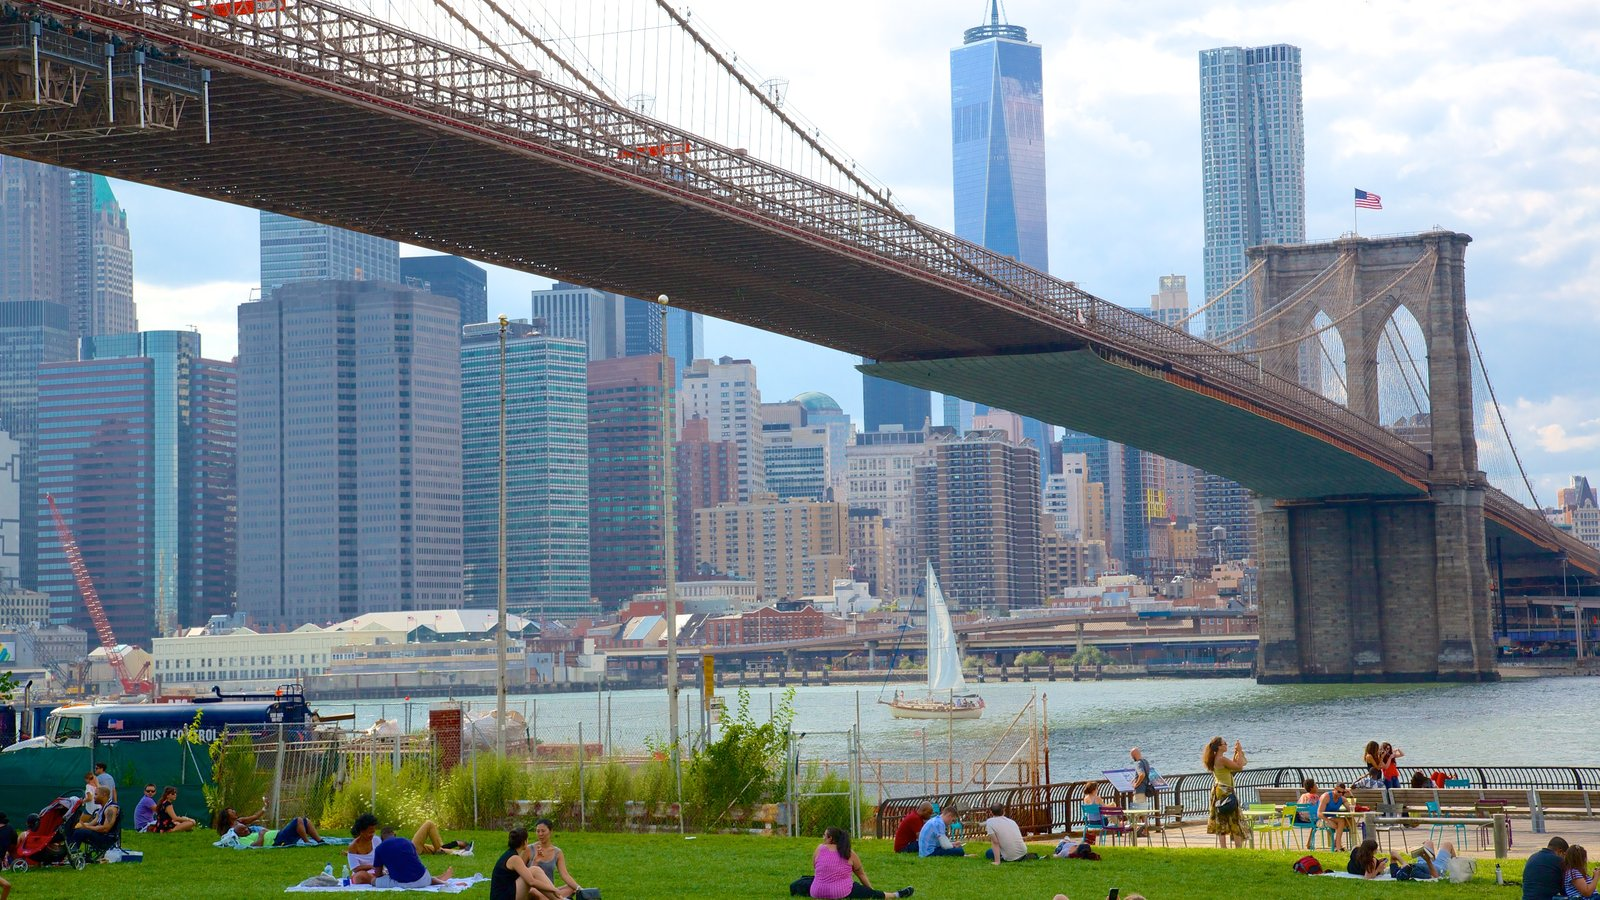 Gardens parks pictures view images of brooklyn bridge park brooklyn bridge park malvernweather Gallery